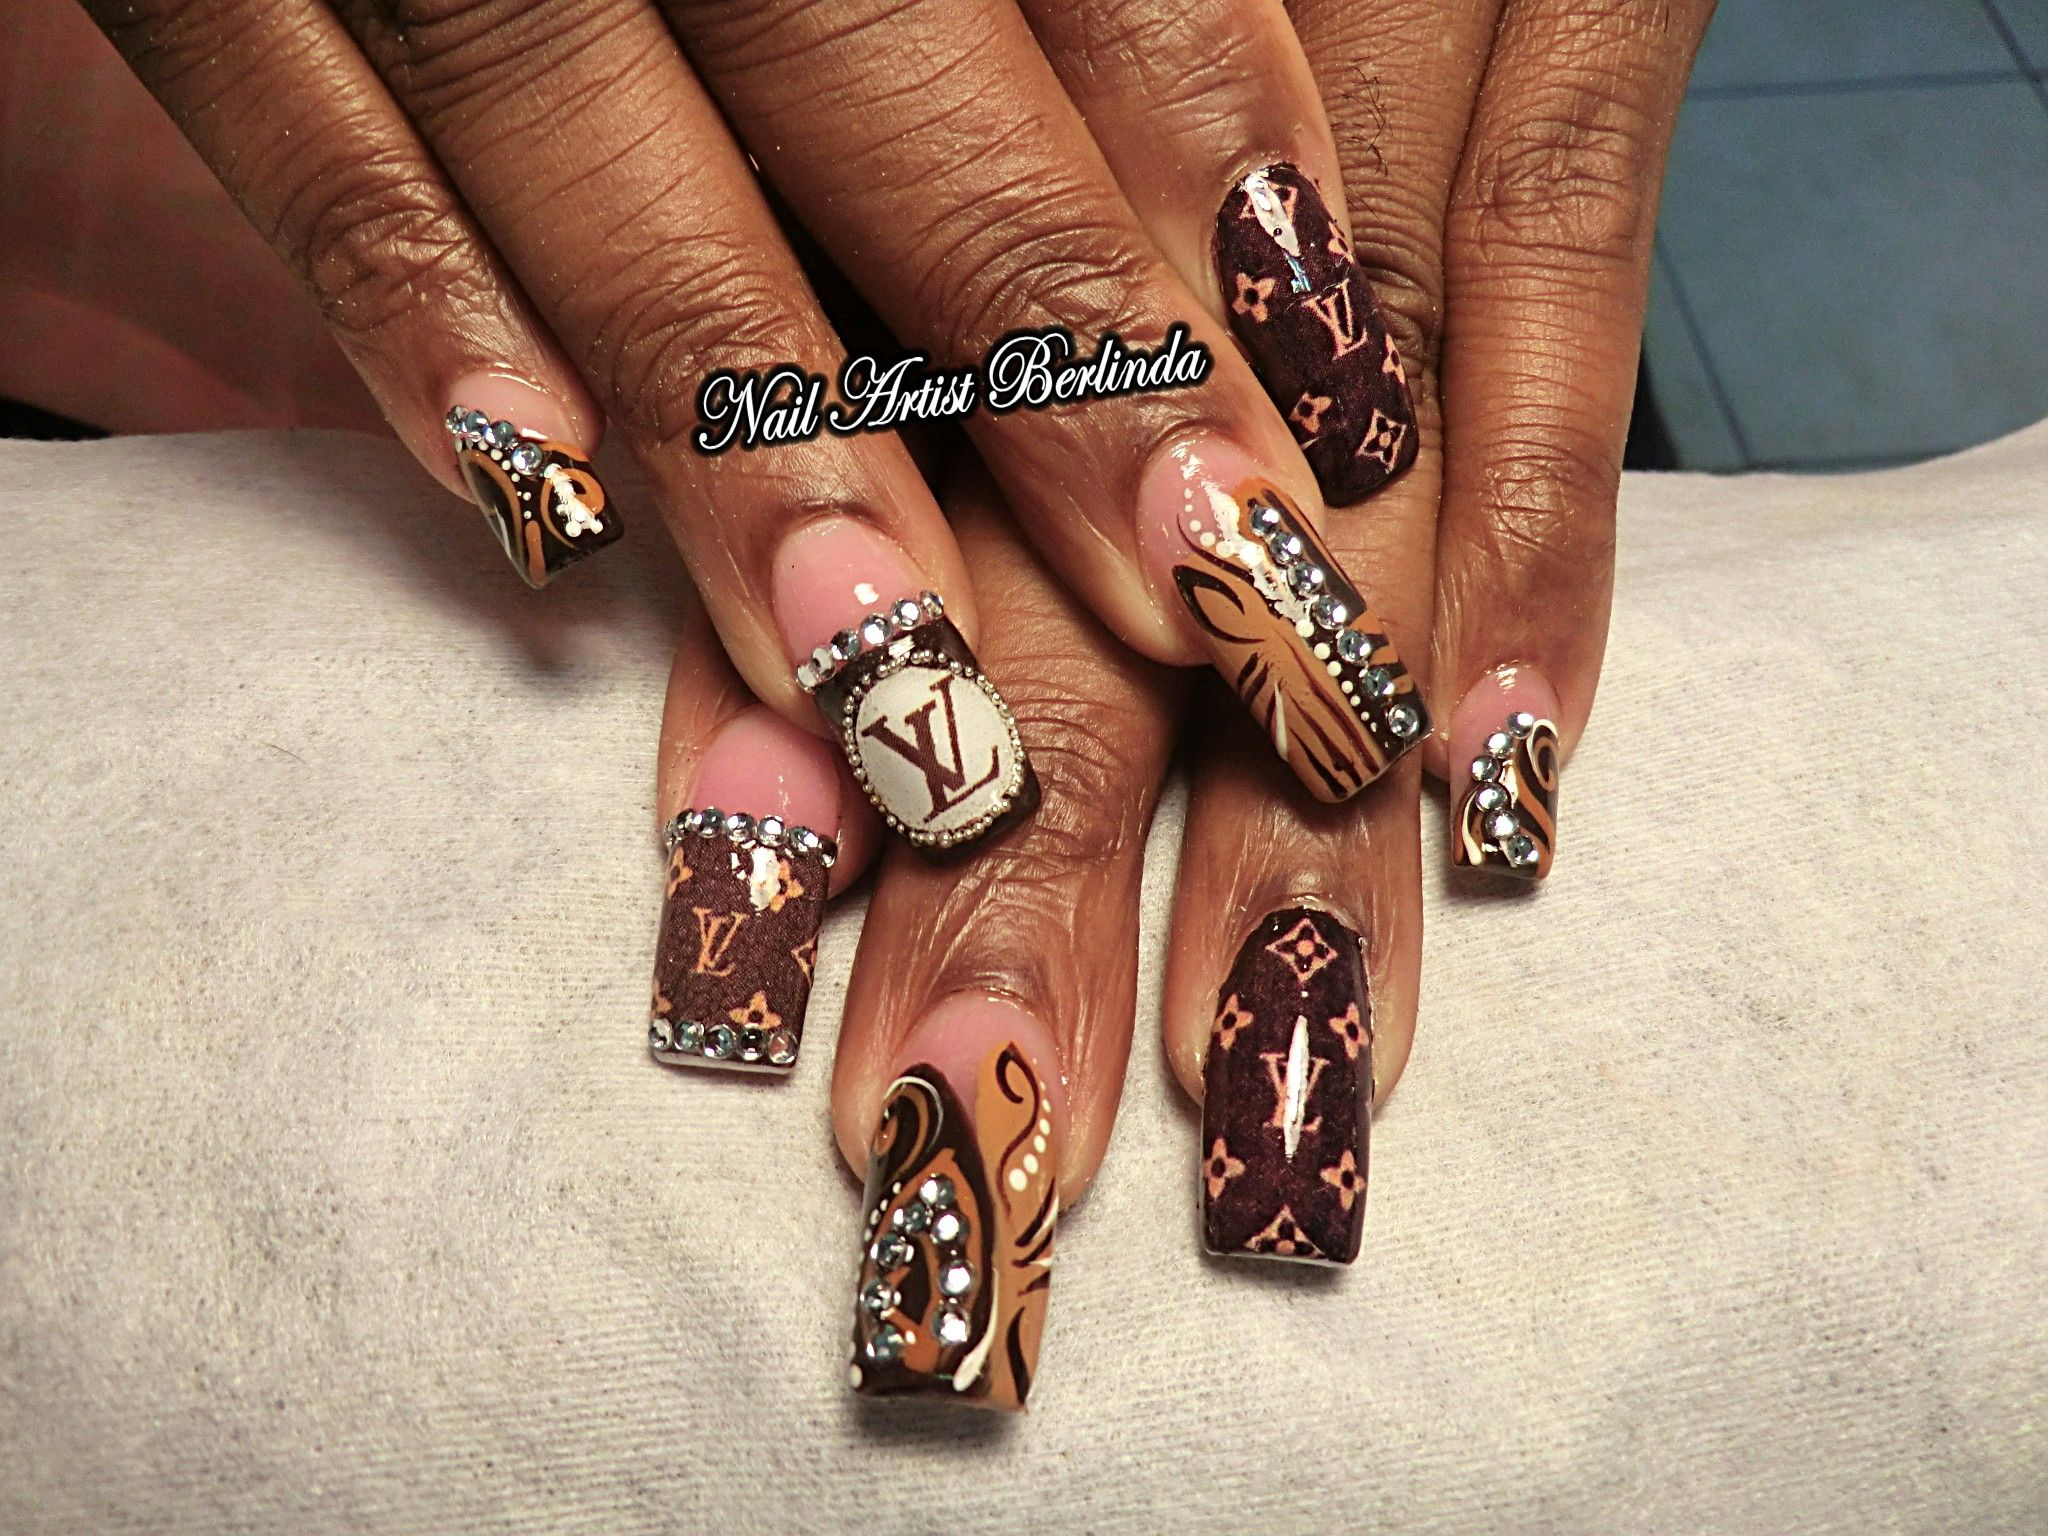 Louis Vuitton - www.nailartistberlinda.com for decals | Extravagant ...